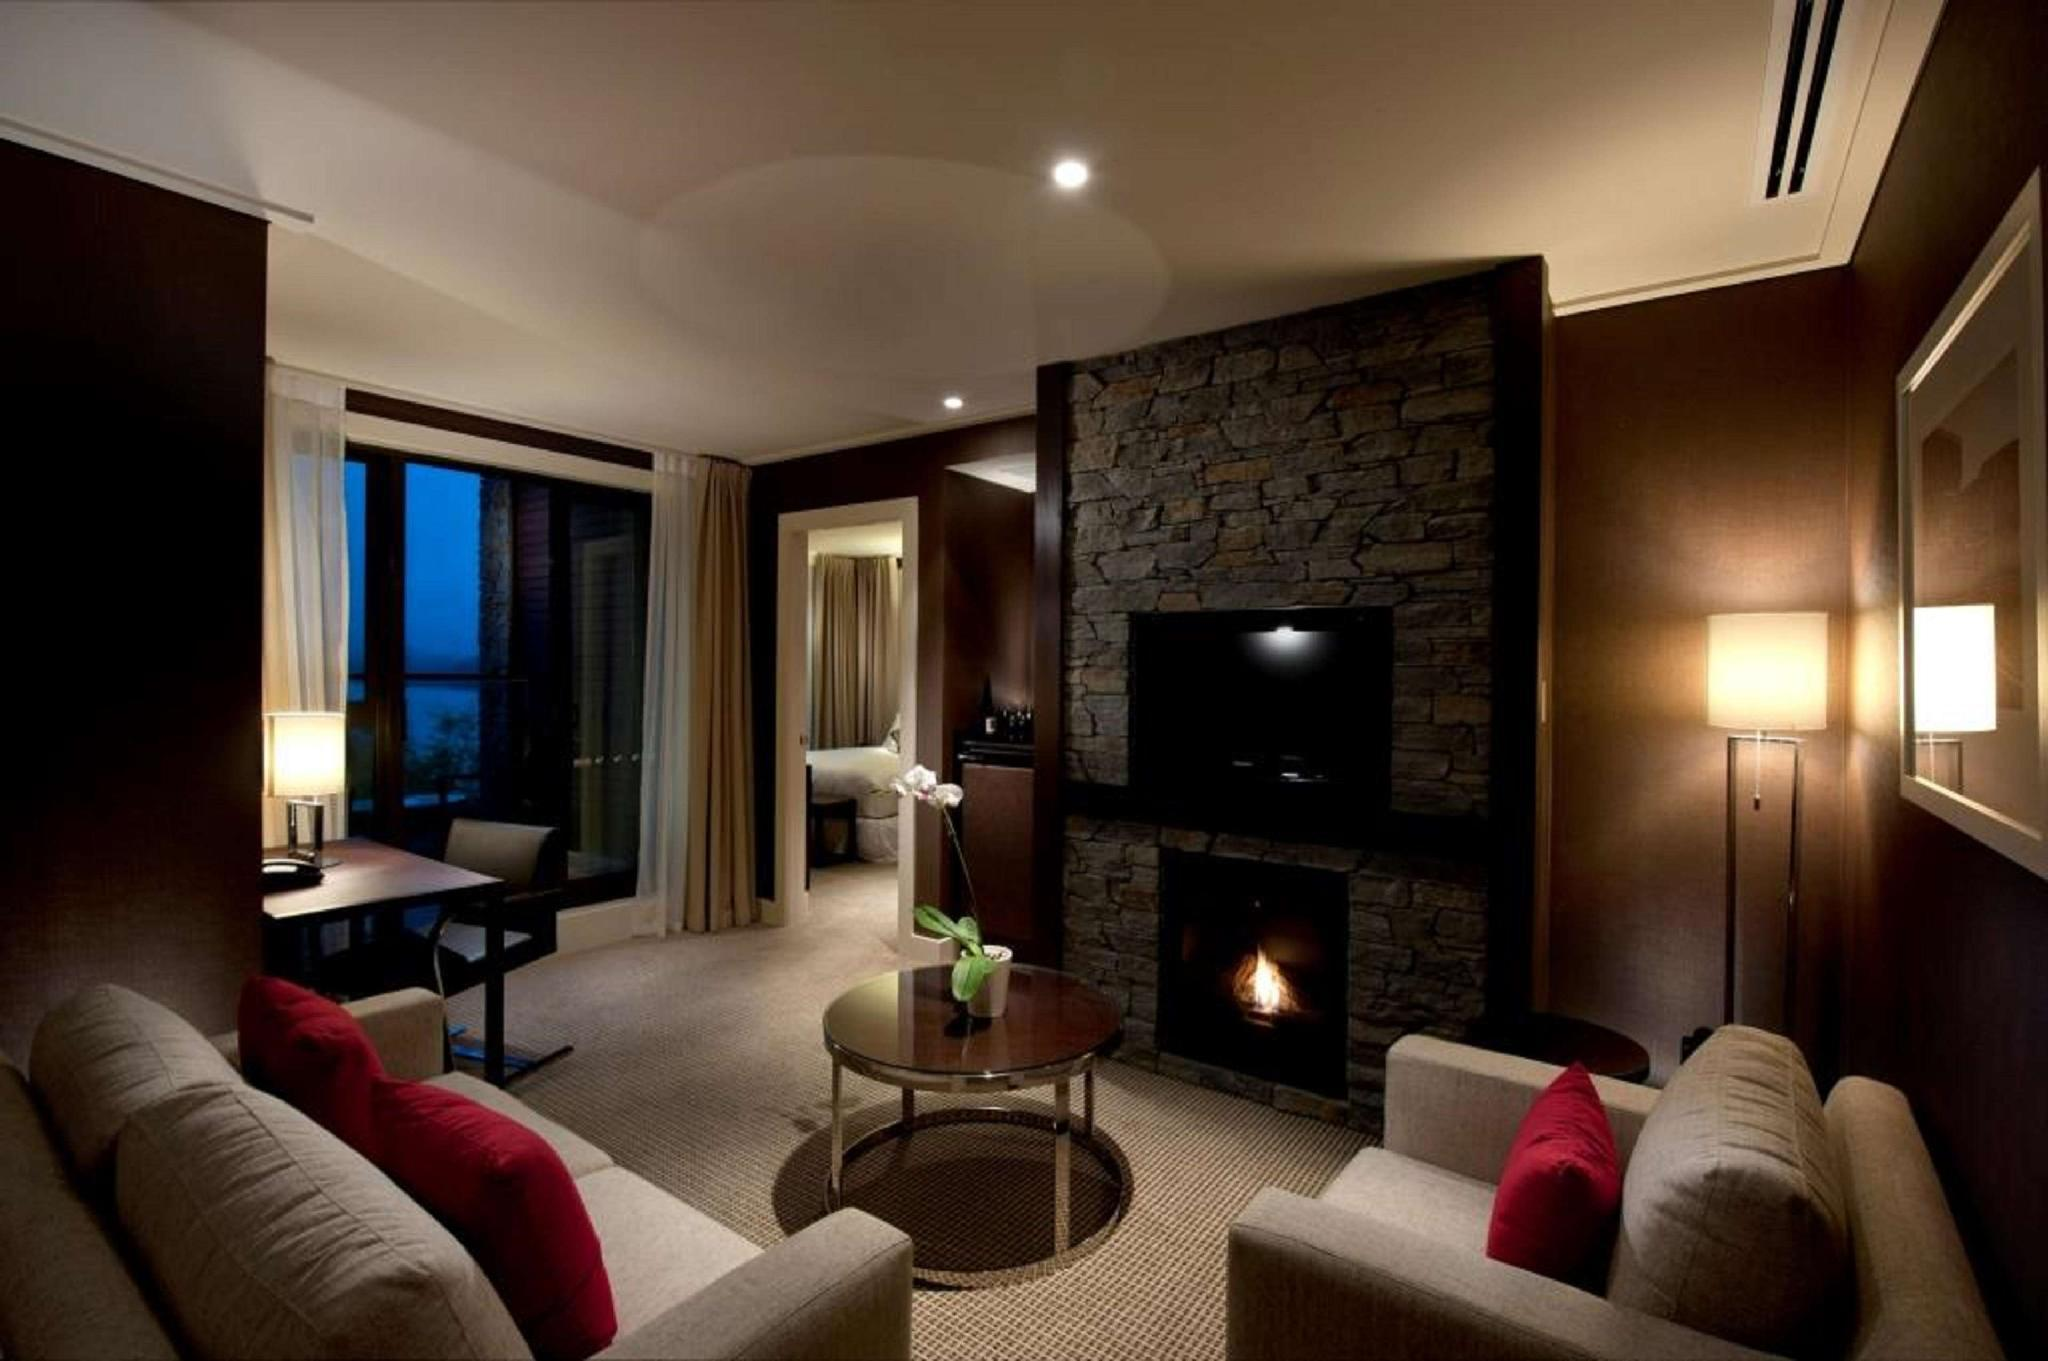 King-suite ved Wakatipu flod (King Lake Wakatipu Suite)